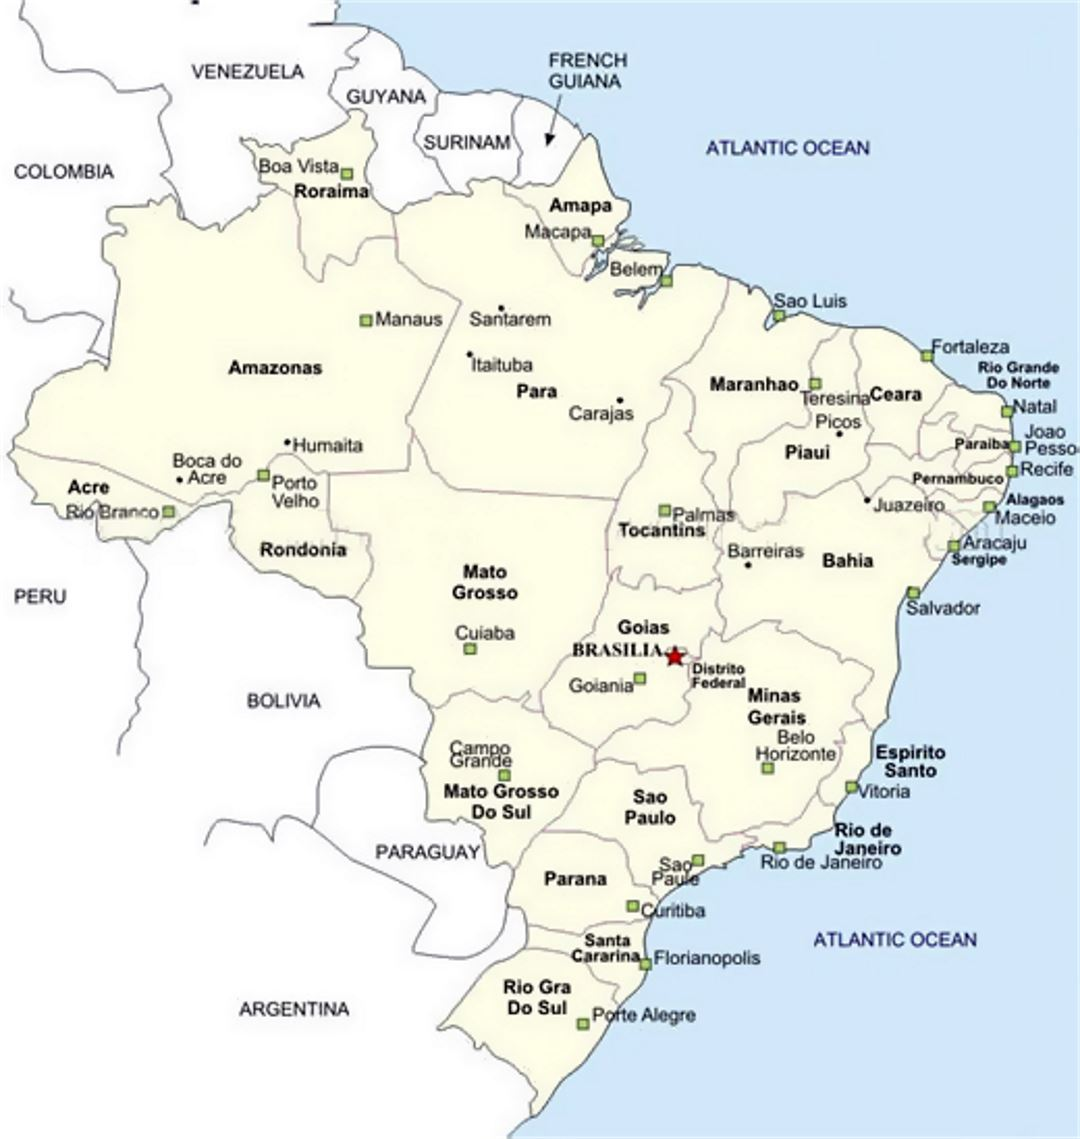 Map Of Brazil With Cities Brazil South America Mapsland - Map of brazil with cities